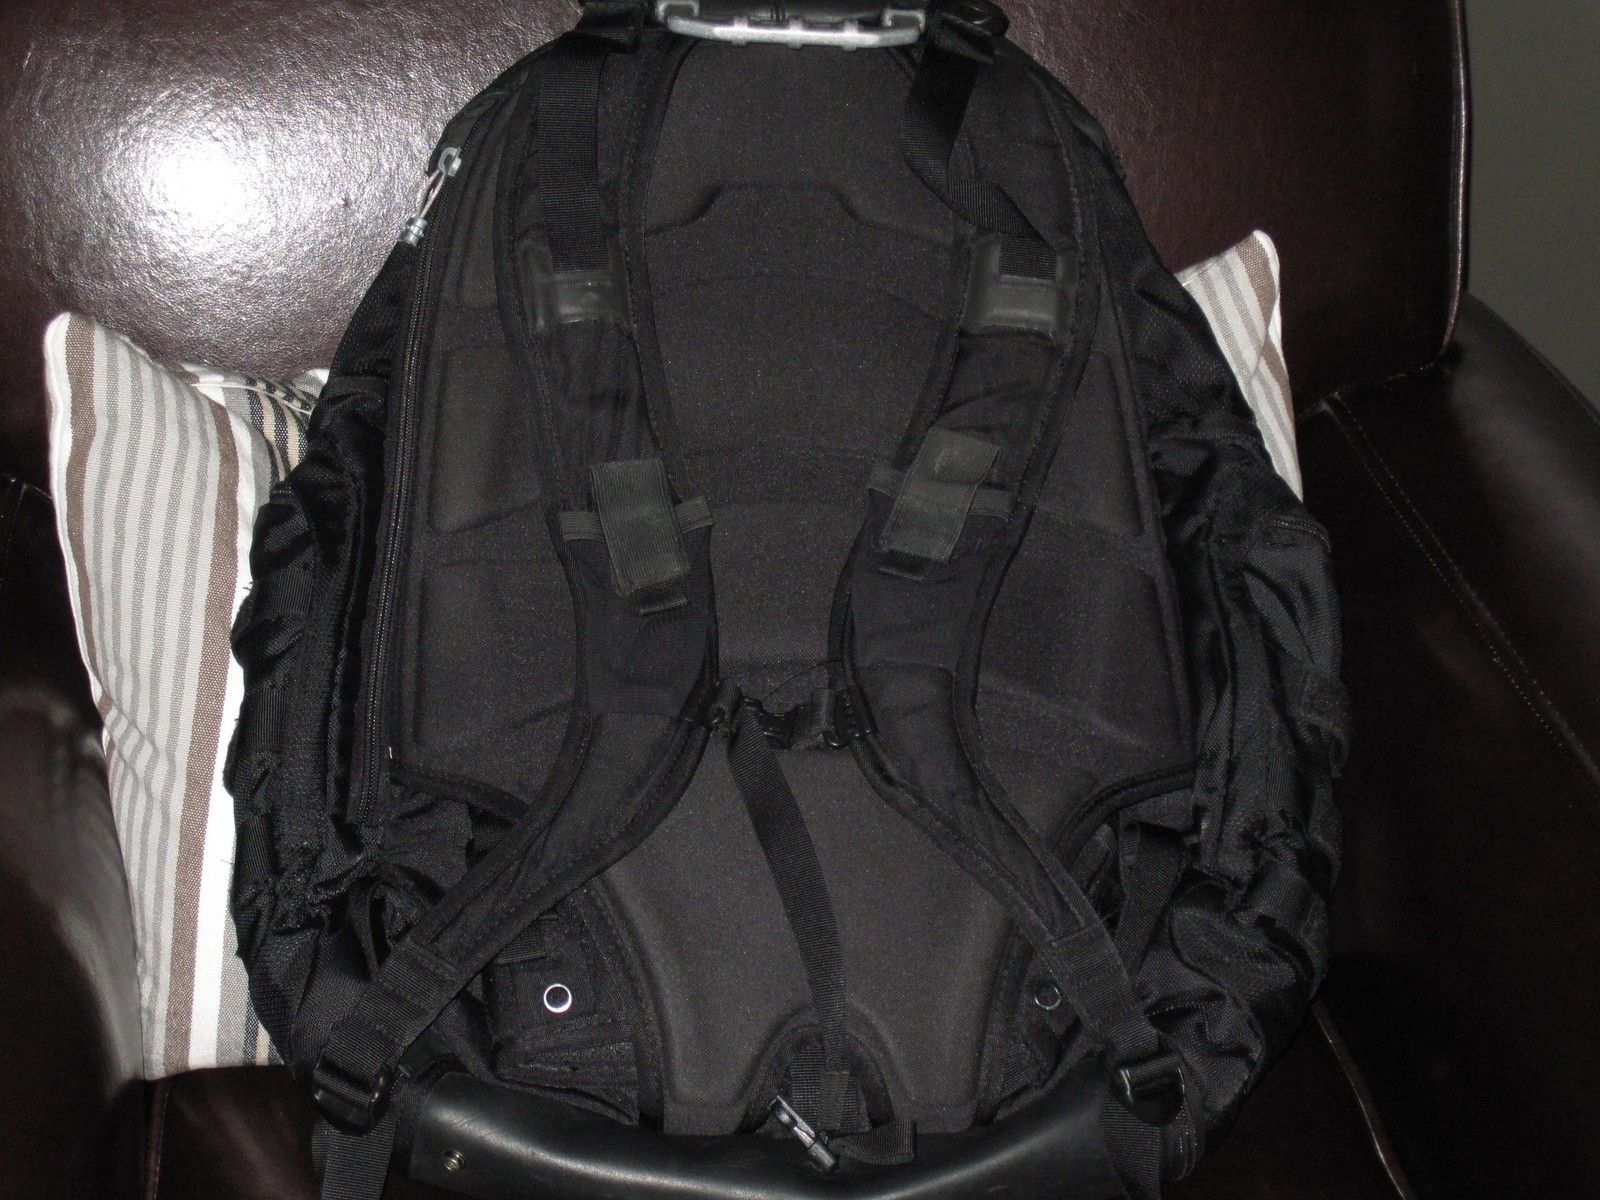 Kitchen Sink Backpack - IMG_0021.JPG